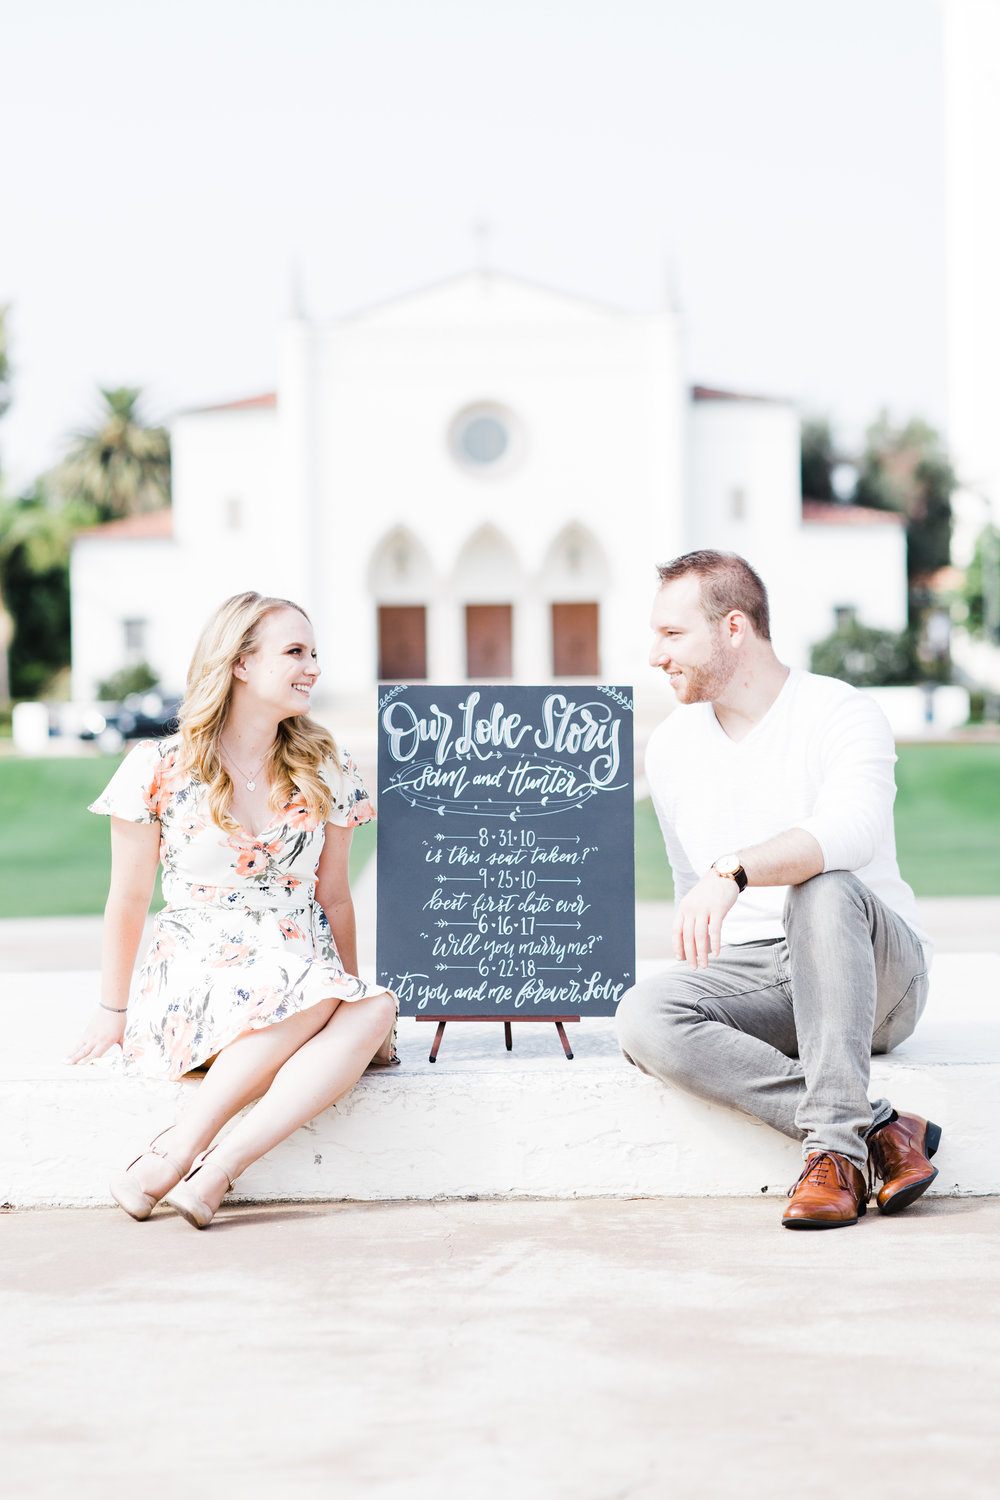 The sign gives context as to why they are not close together. With space, they are now free to make eye contact with each other as the context of the portrait becomes their connection to each other and the important dates leading up to their wedding.